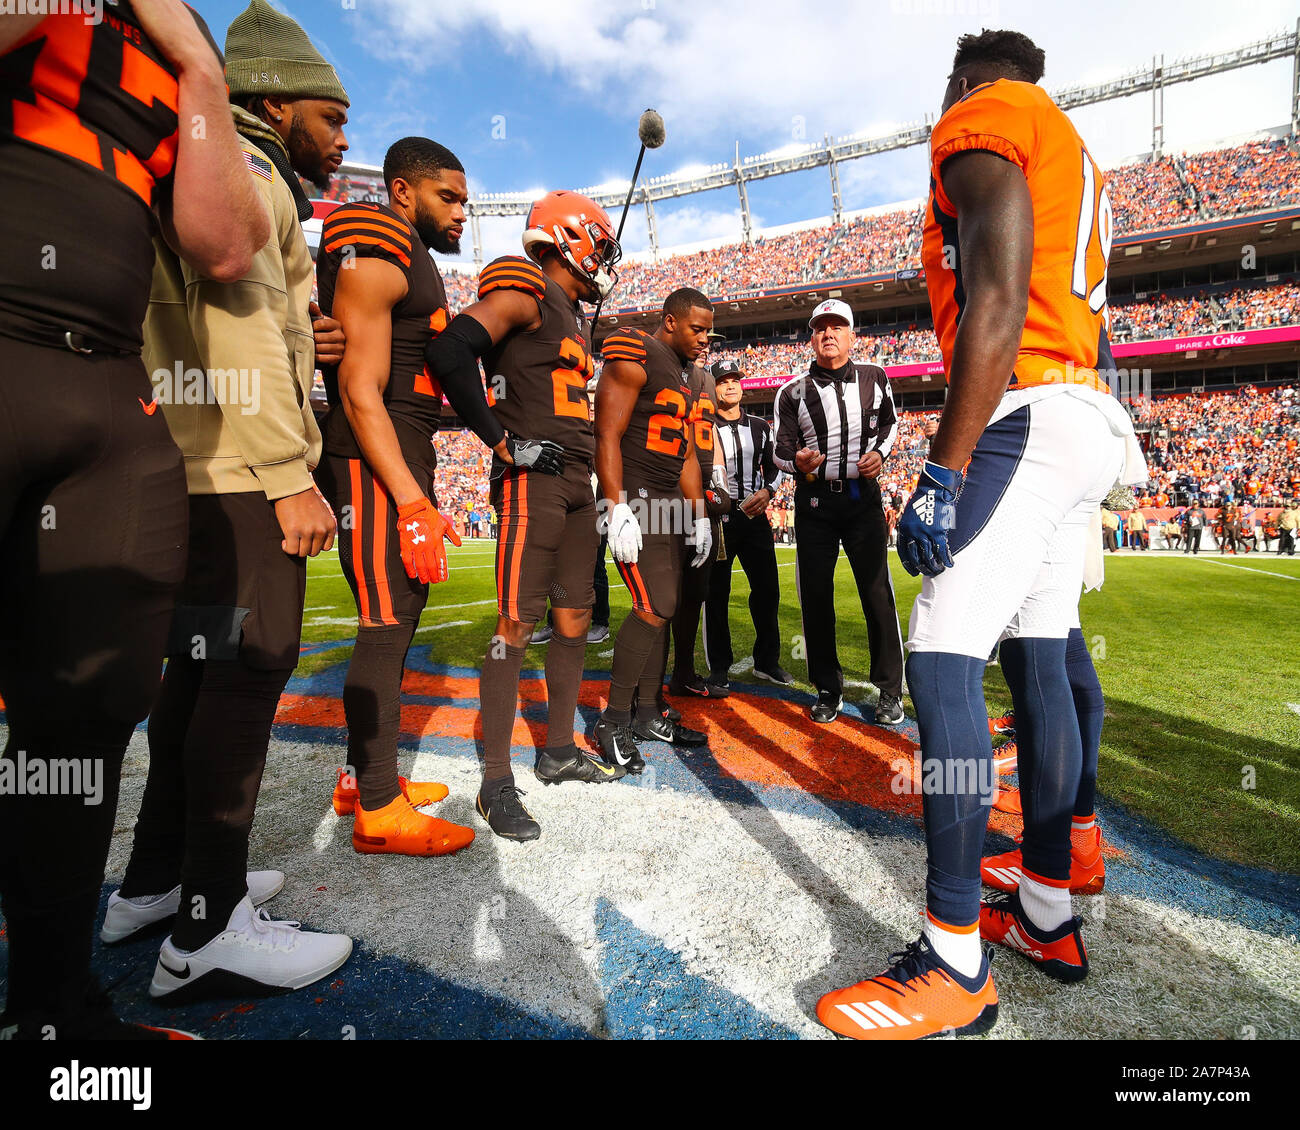 November 03, 2019: The coin toss is held before the game between Denver and Cleveland at Empower Field in Denver, CO. Denver held on to win 24-19. Derek Regensburger/CSM. Stock Photo